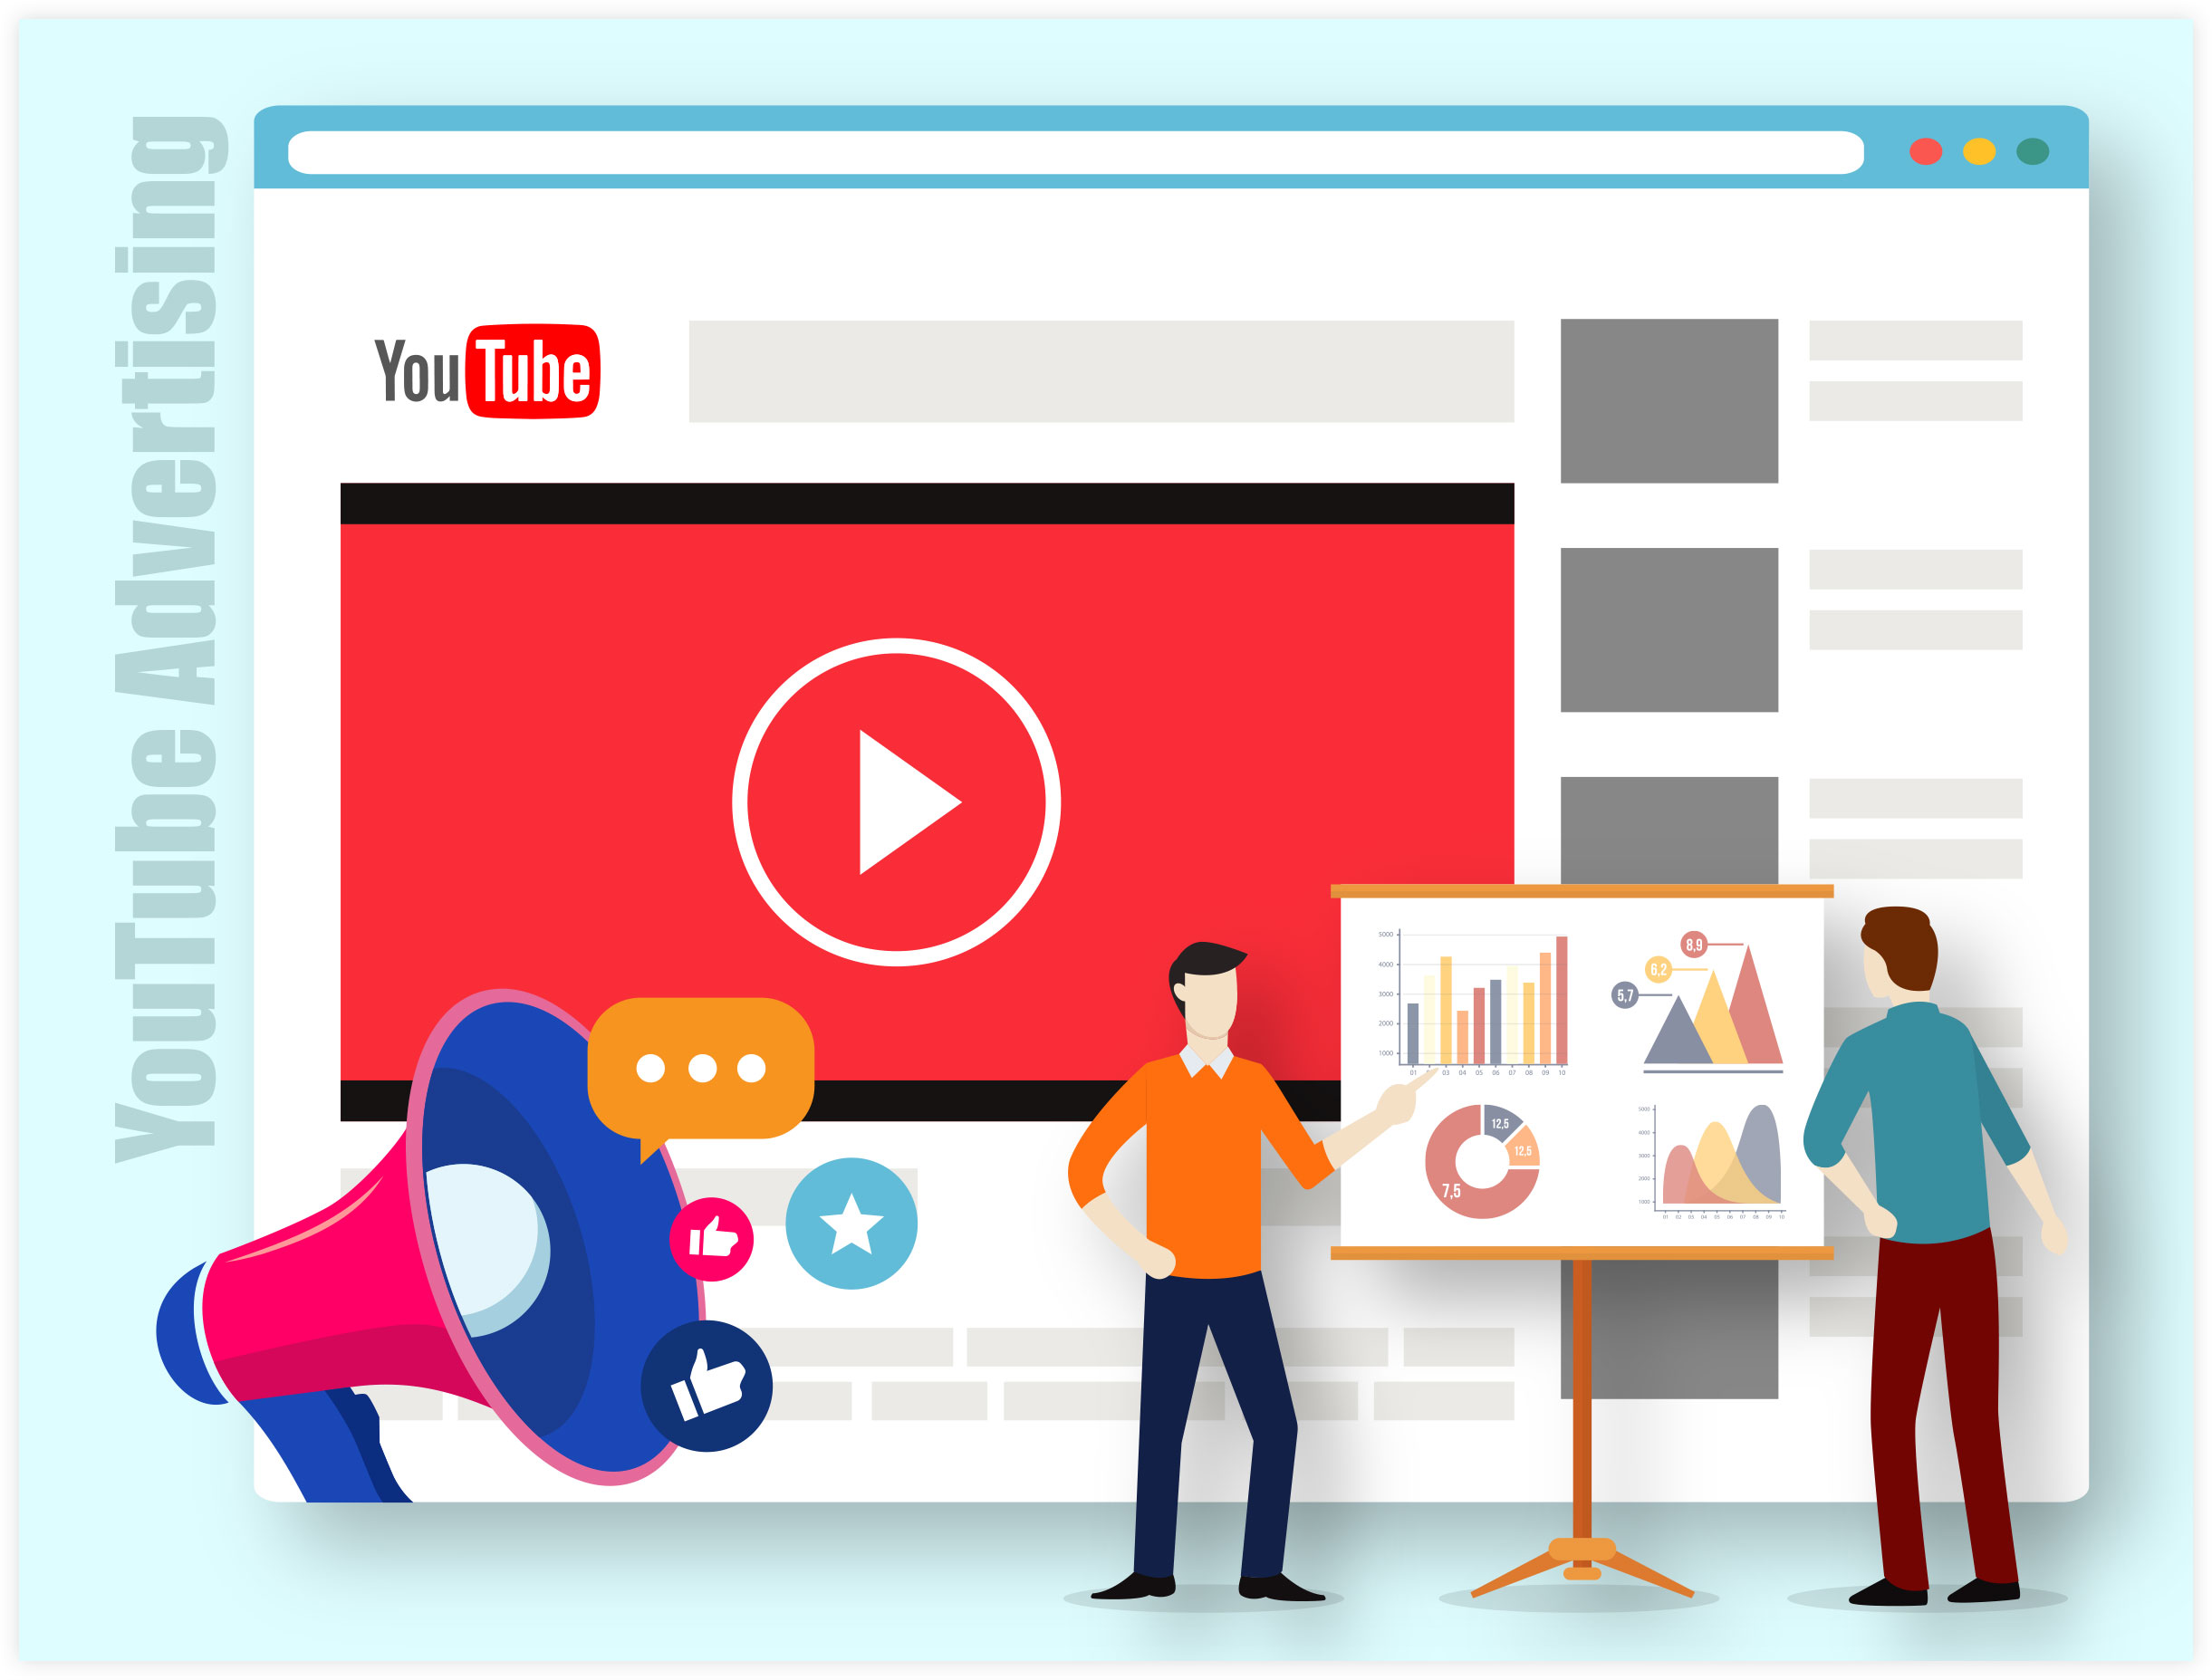 YouTube Advertising Illustration